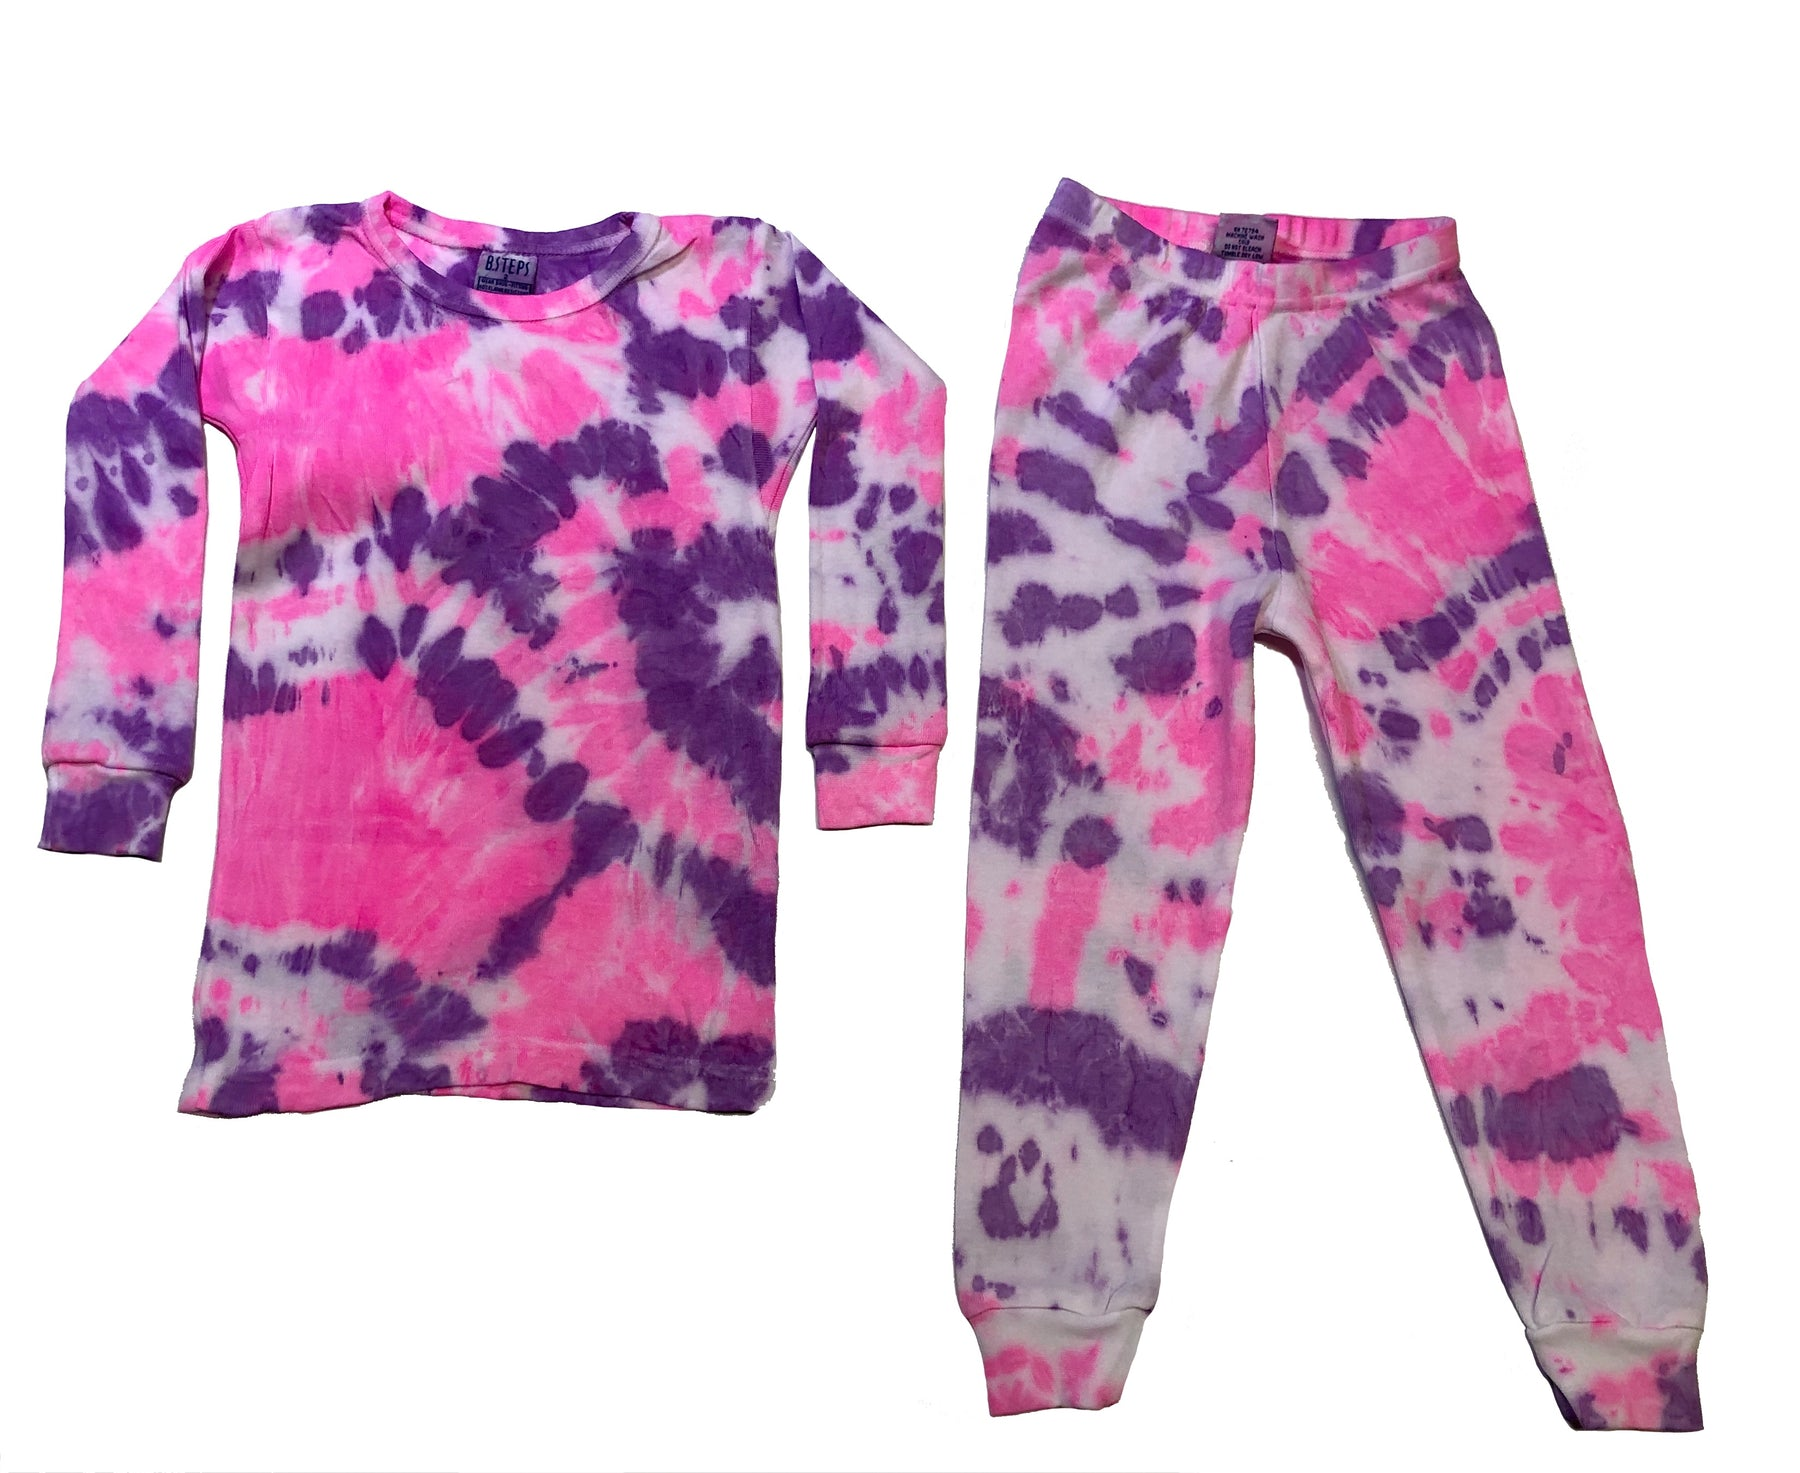 NEW Tie Dye Pajamas - Neon Pink/Neon Purple (4533996978251)